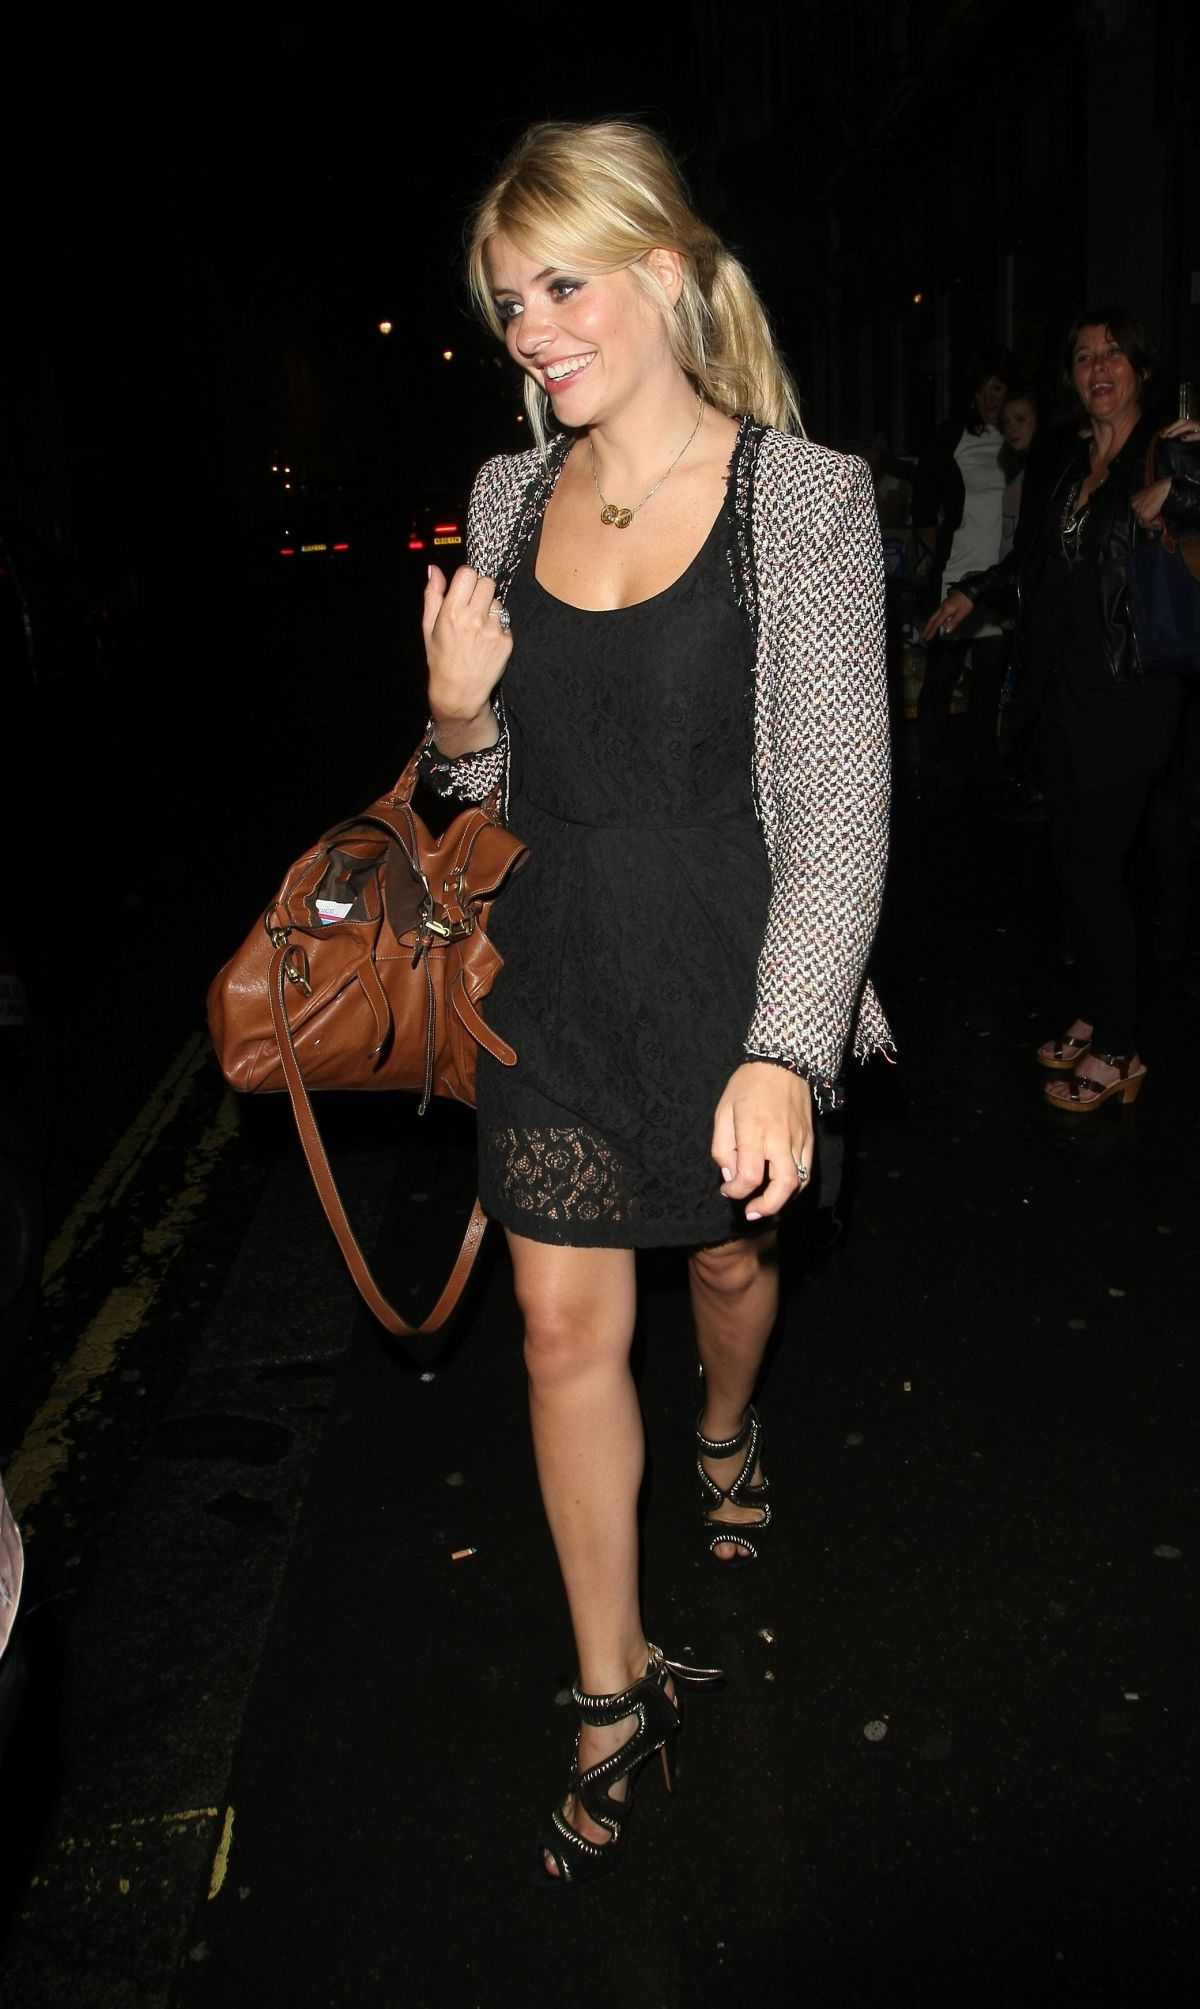 HOLLY WILLOGHBY Leaves a Night Club in London